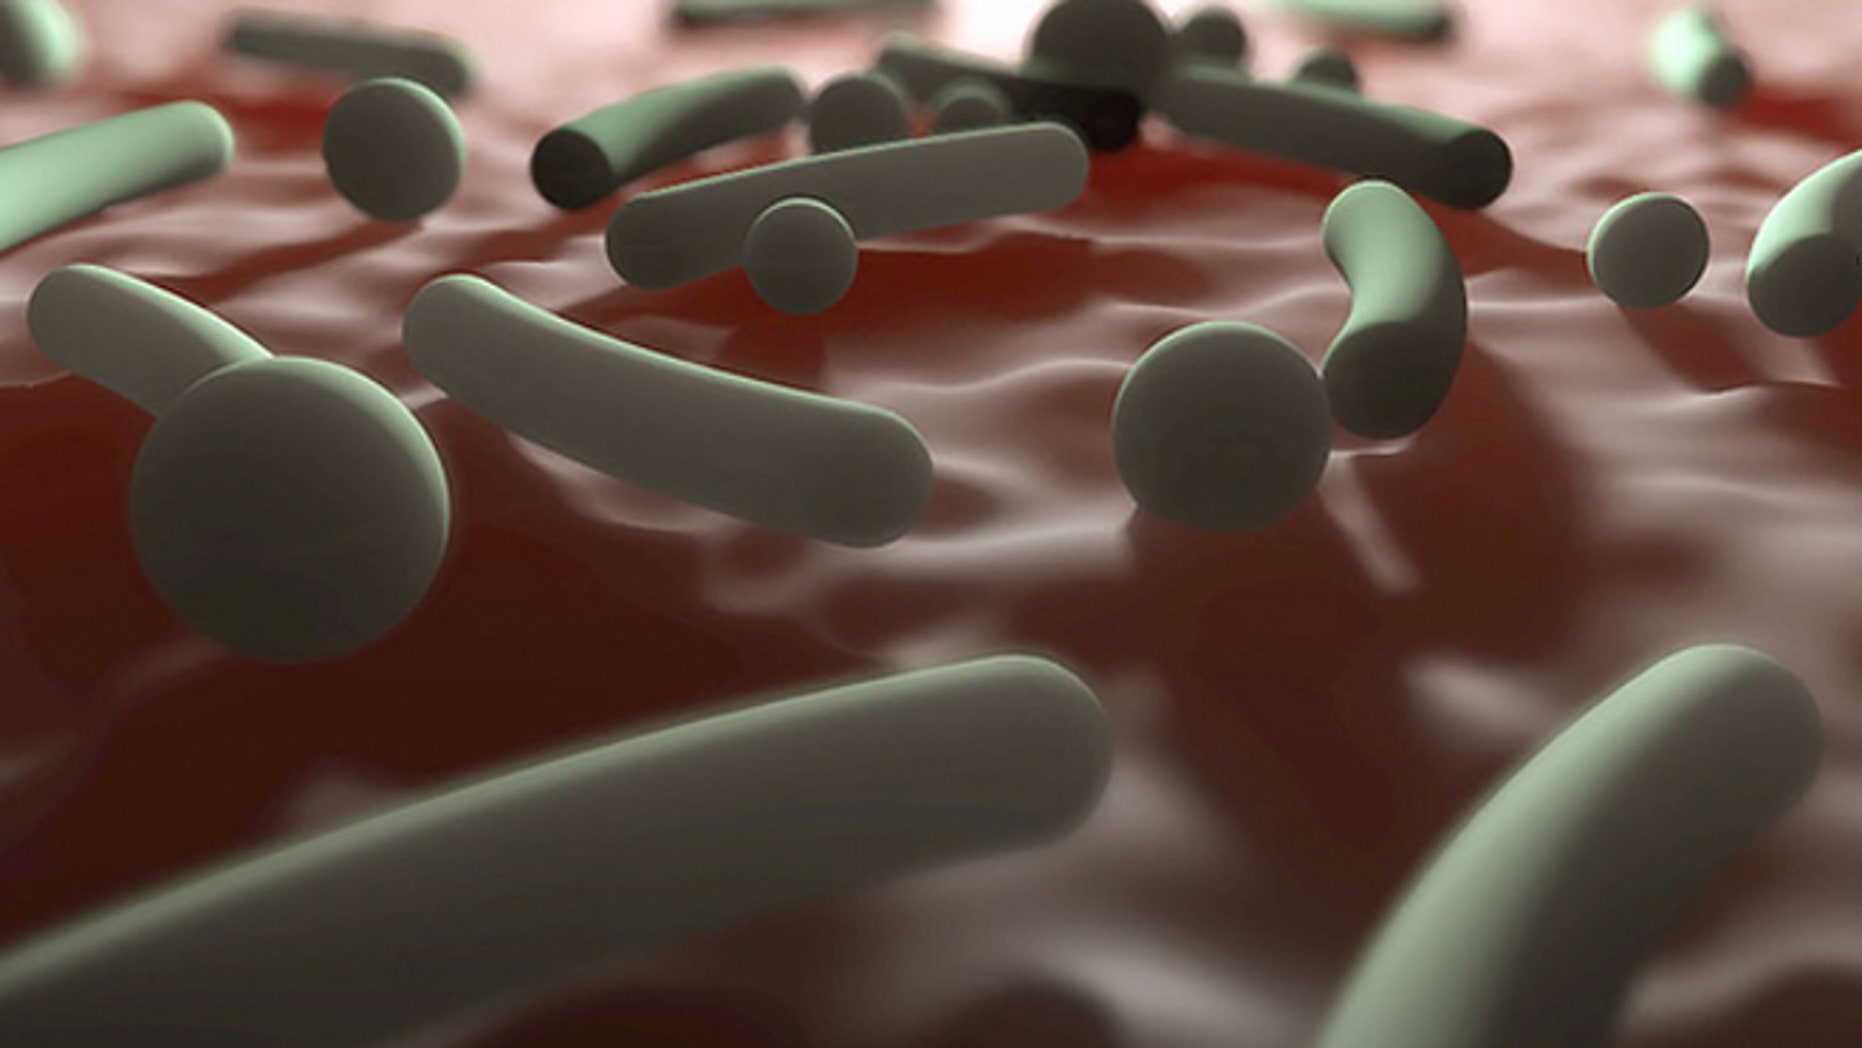 People who follow the hunter-gatherer lifestyle and don't have contact with industrialized cultures tend to have more diverse bacteria in and on their bodies.